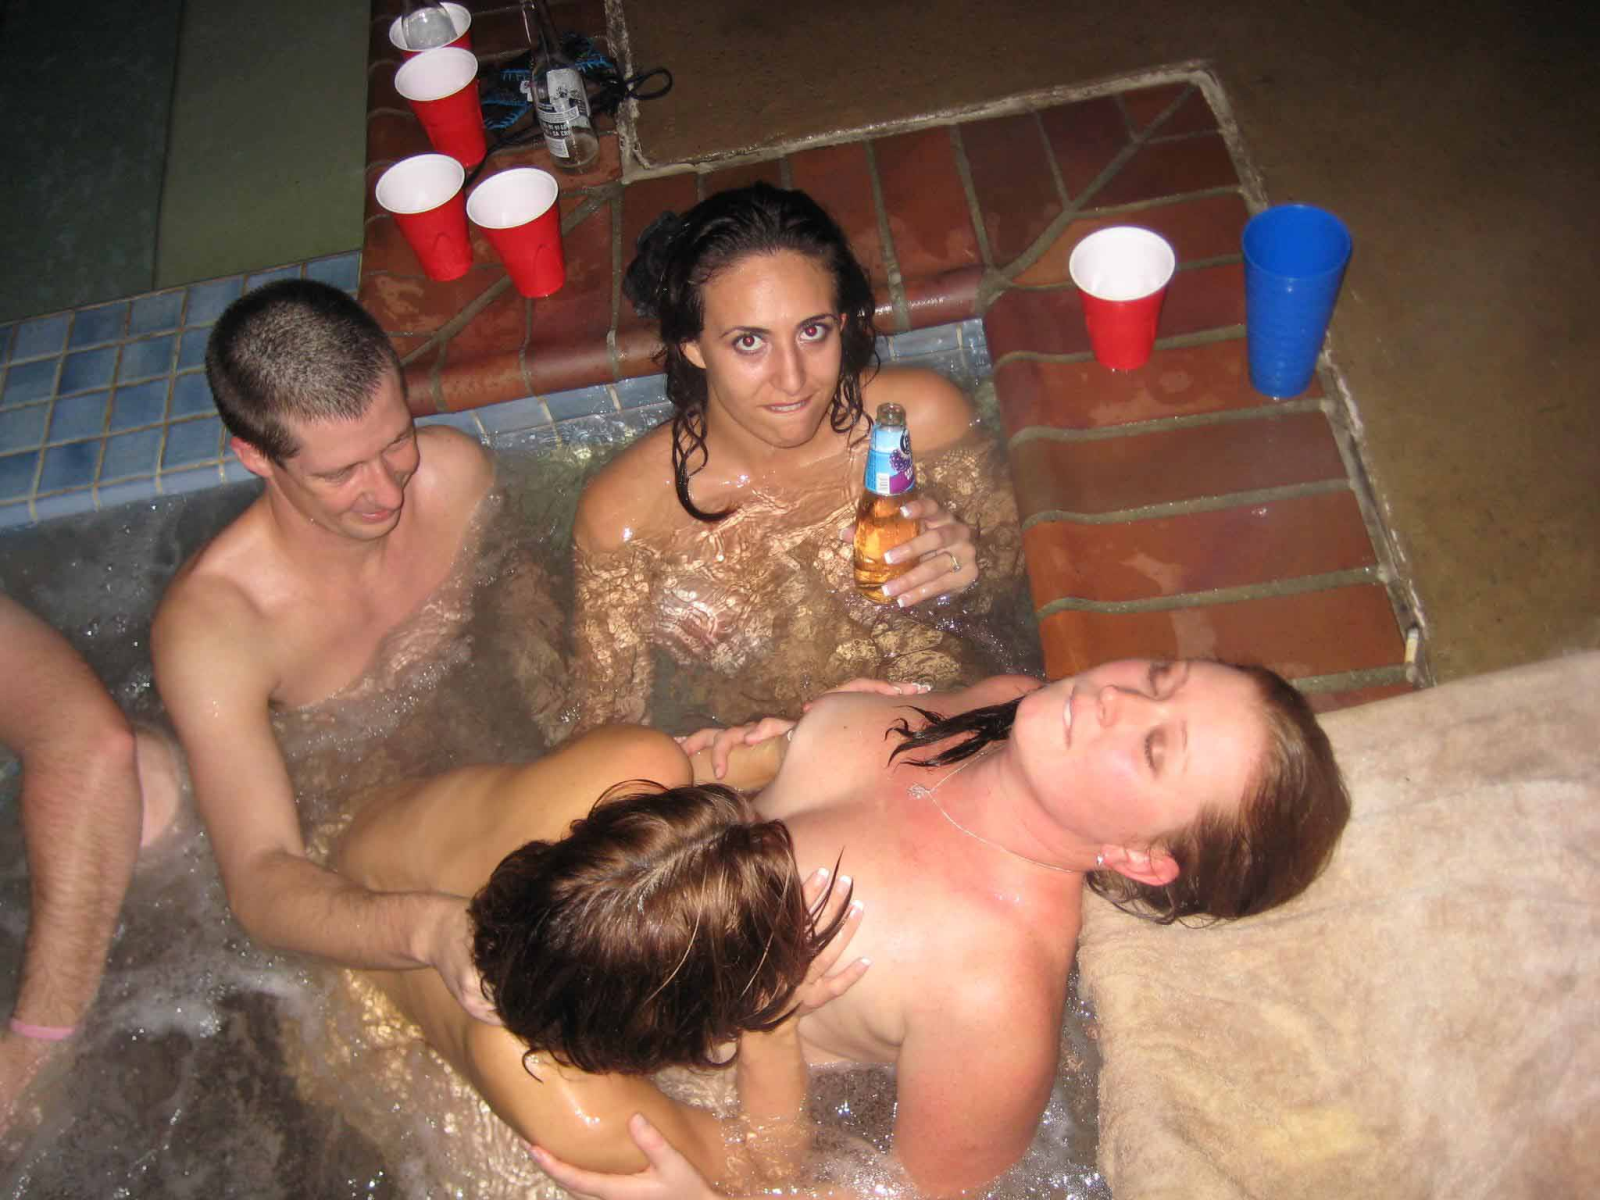 Teen home sex party